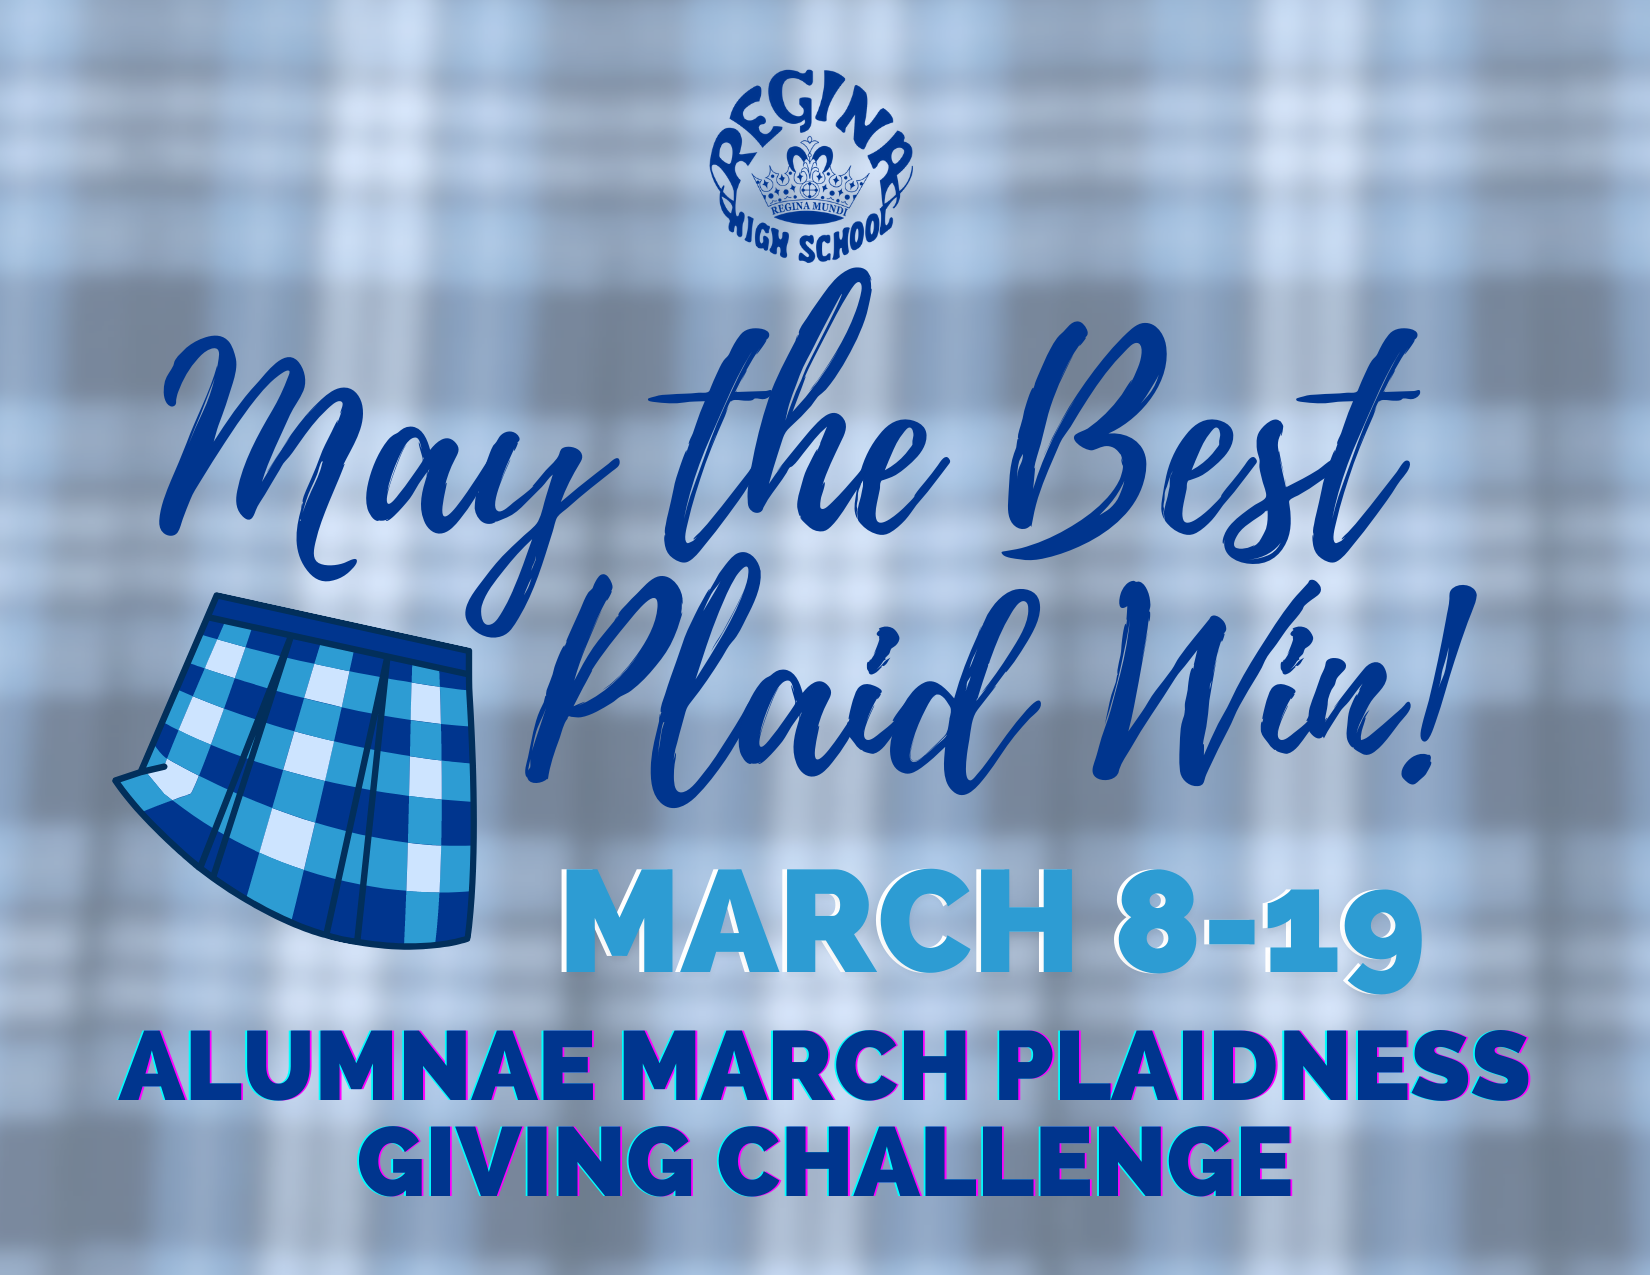 March Plaidness